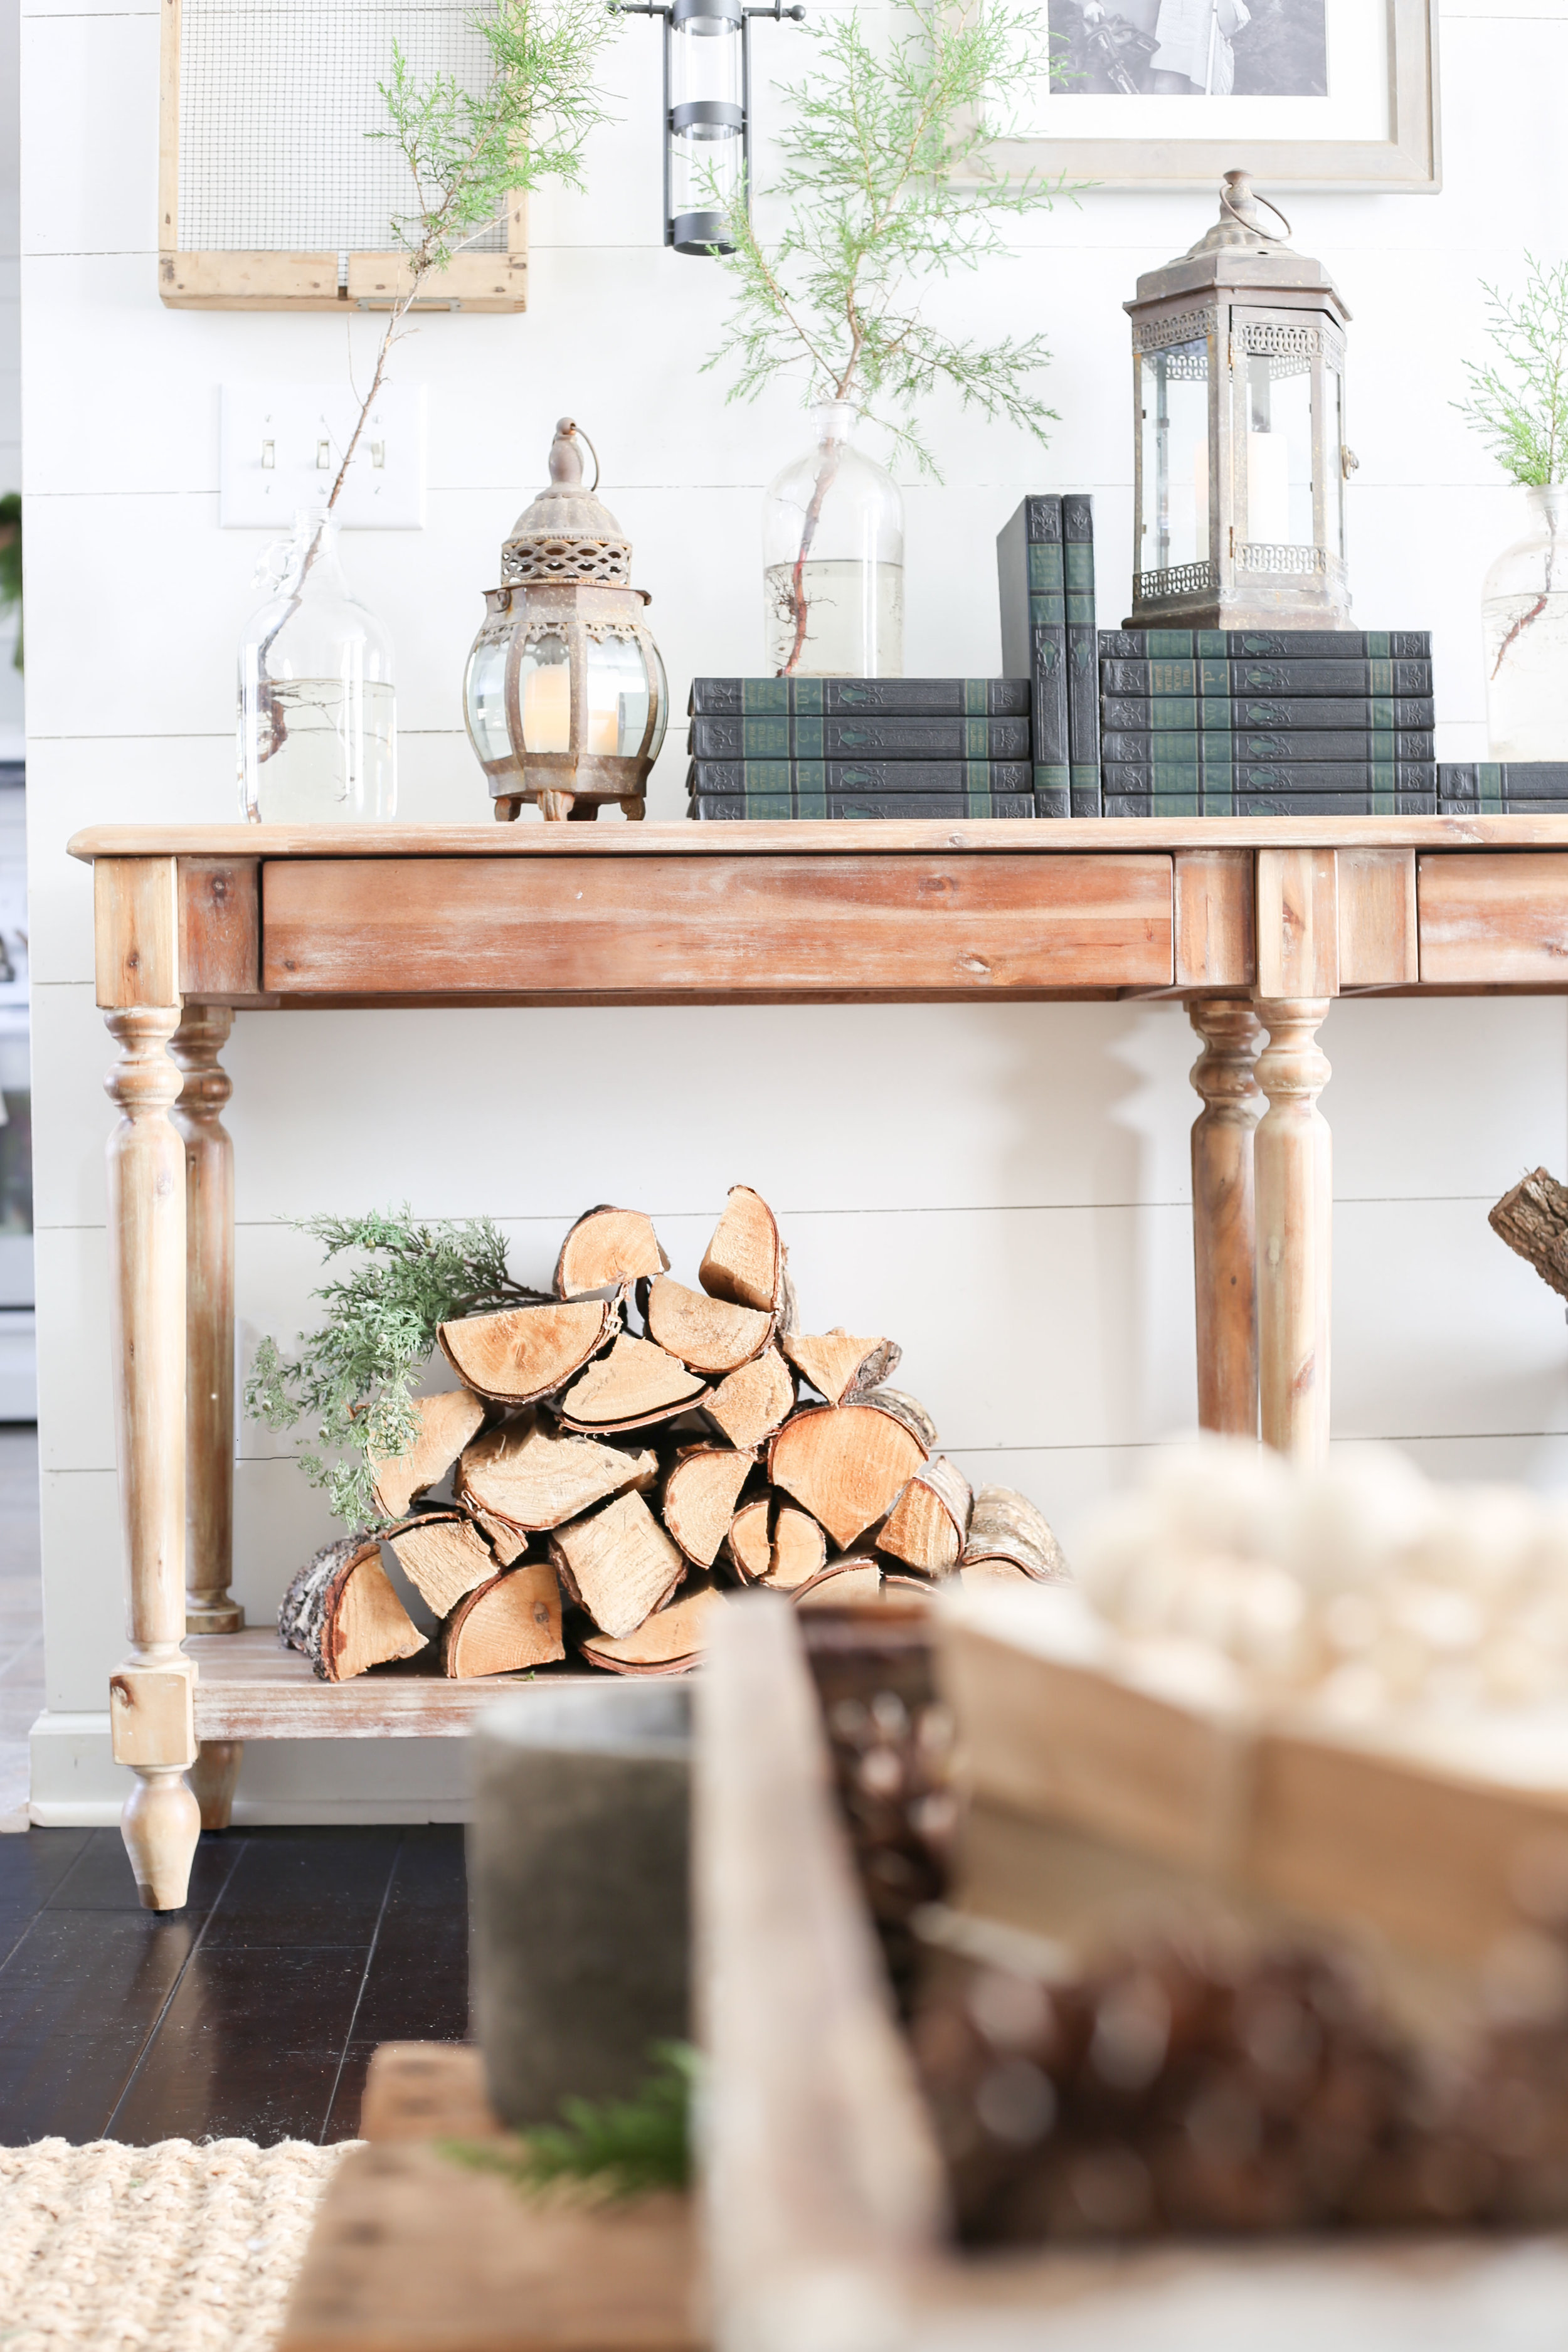 Christmas 2017 Home Tour: Deck The Blogs- Christmas Styled Console Table with Wood Logs- Plum Pretty Decor & Design's Christmas Home Tour